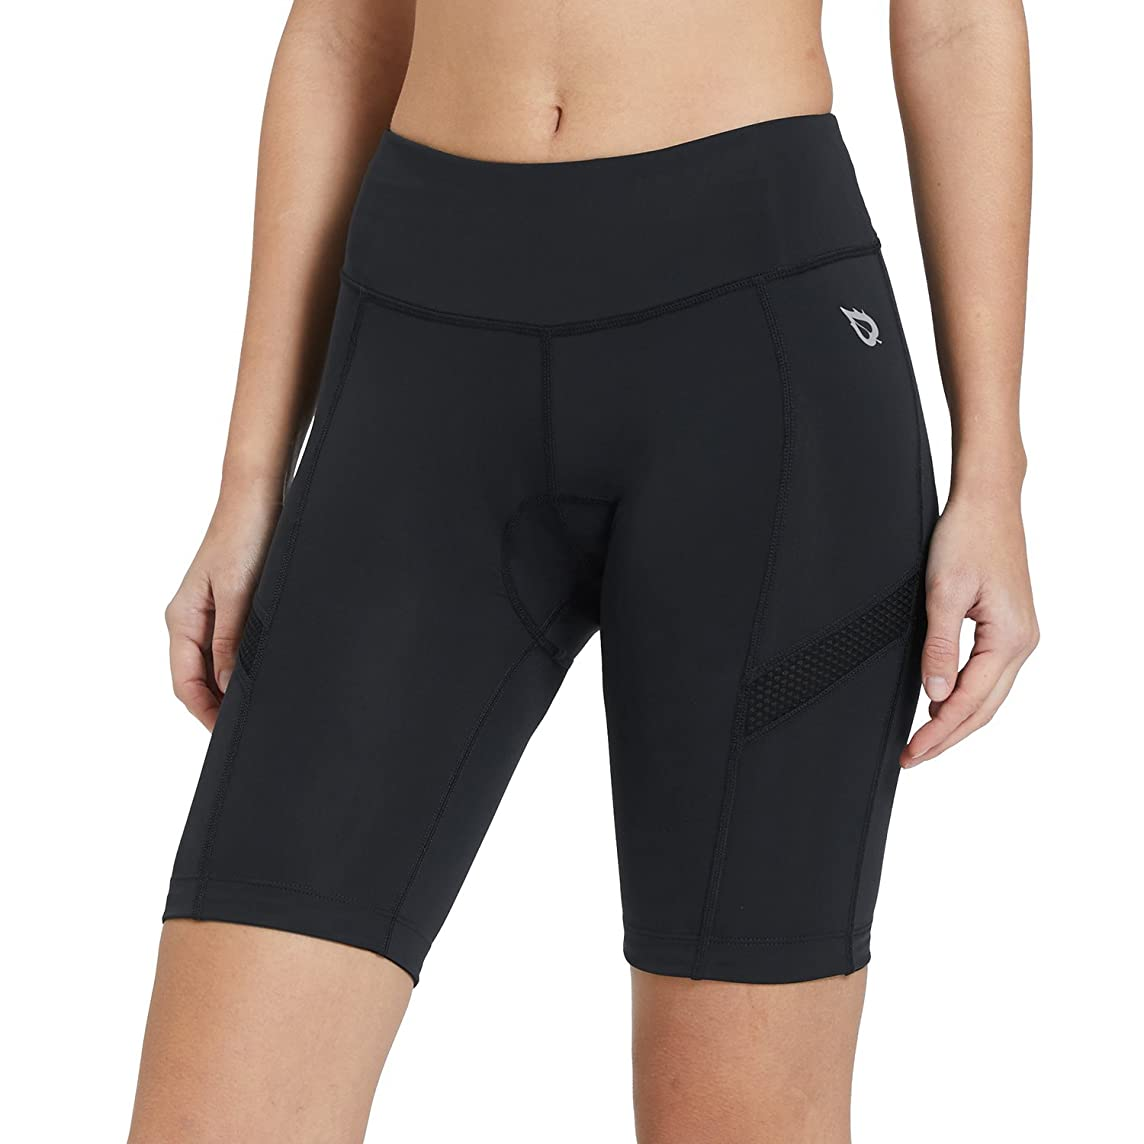 Baleaf Womens Biking Shorts with Padding Wide Waistband UPF 50+ for Cycling, Spinning, Road Bike